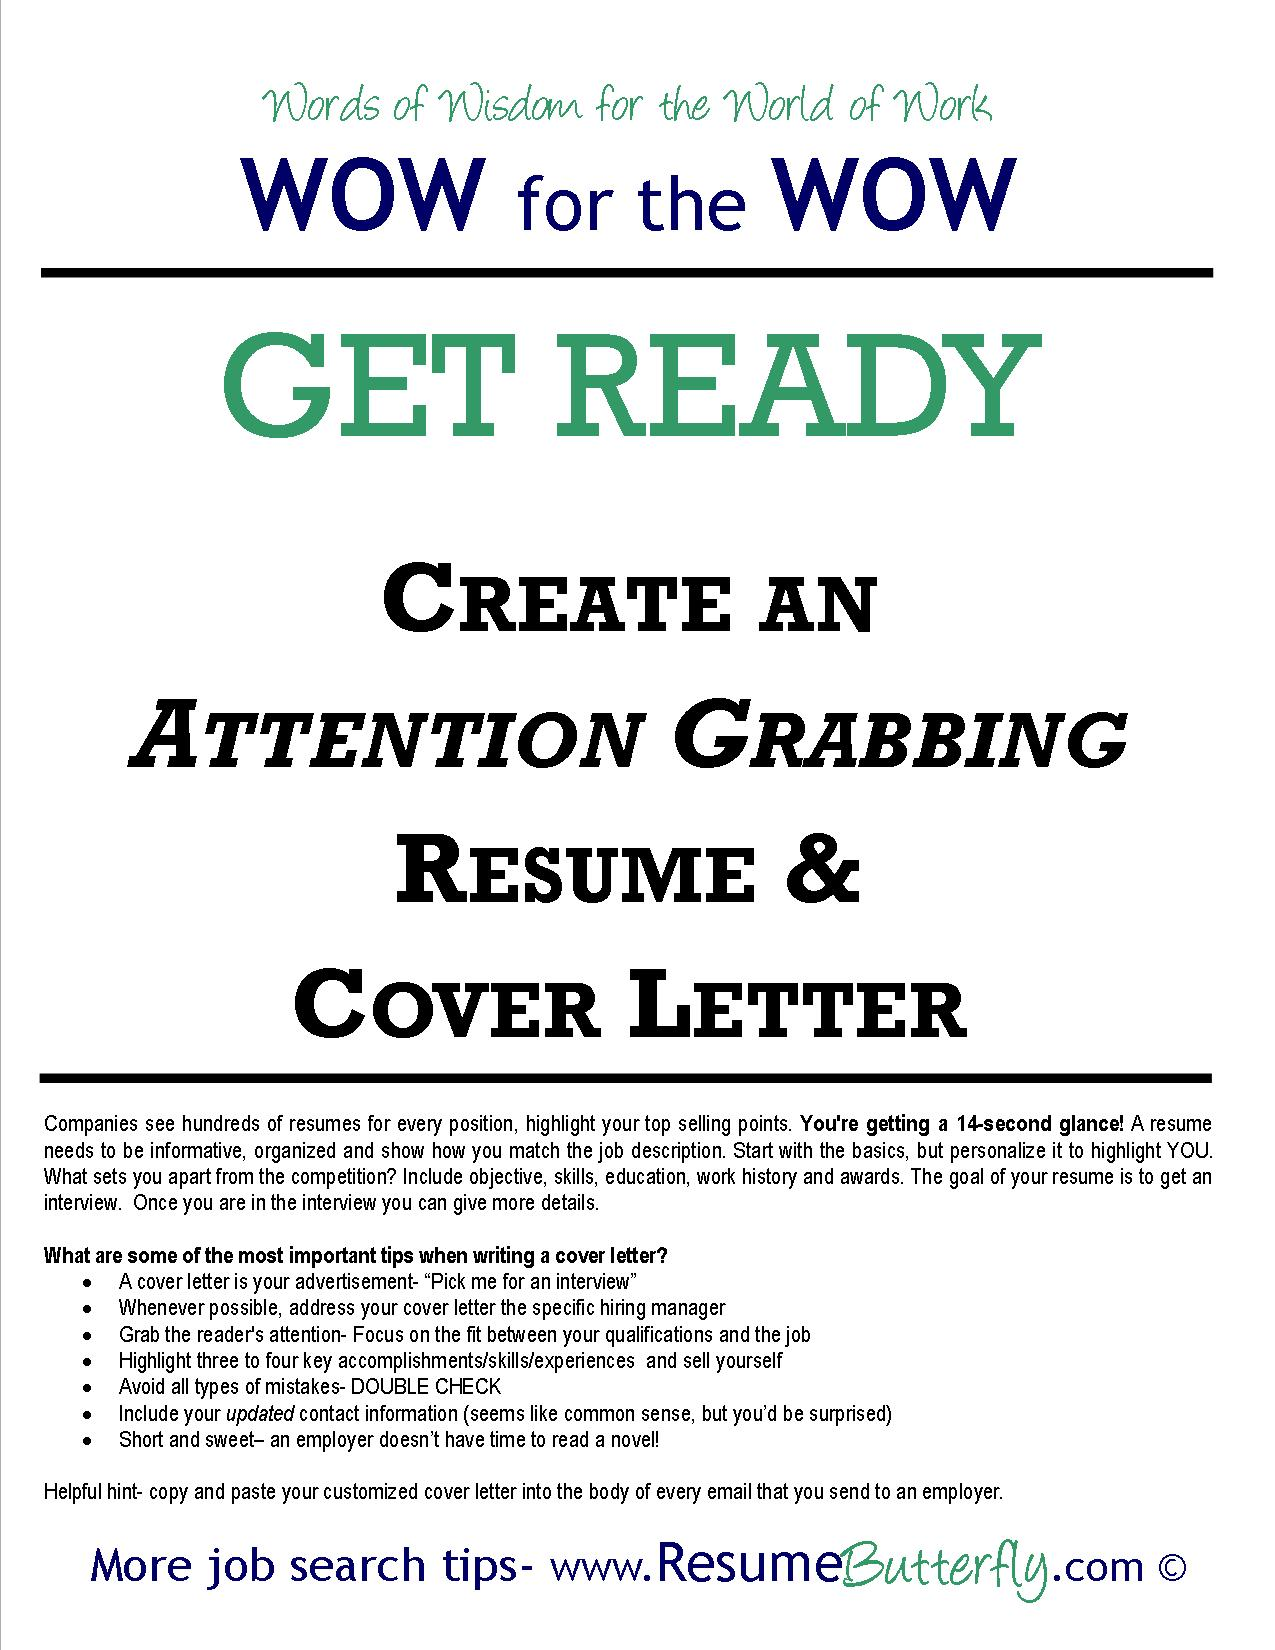 attention grabbing resume cover letter job search skills resume butterfly get ready